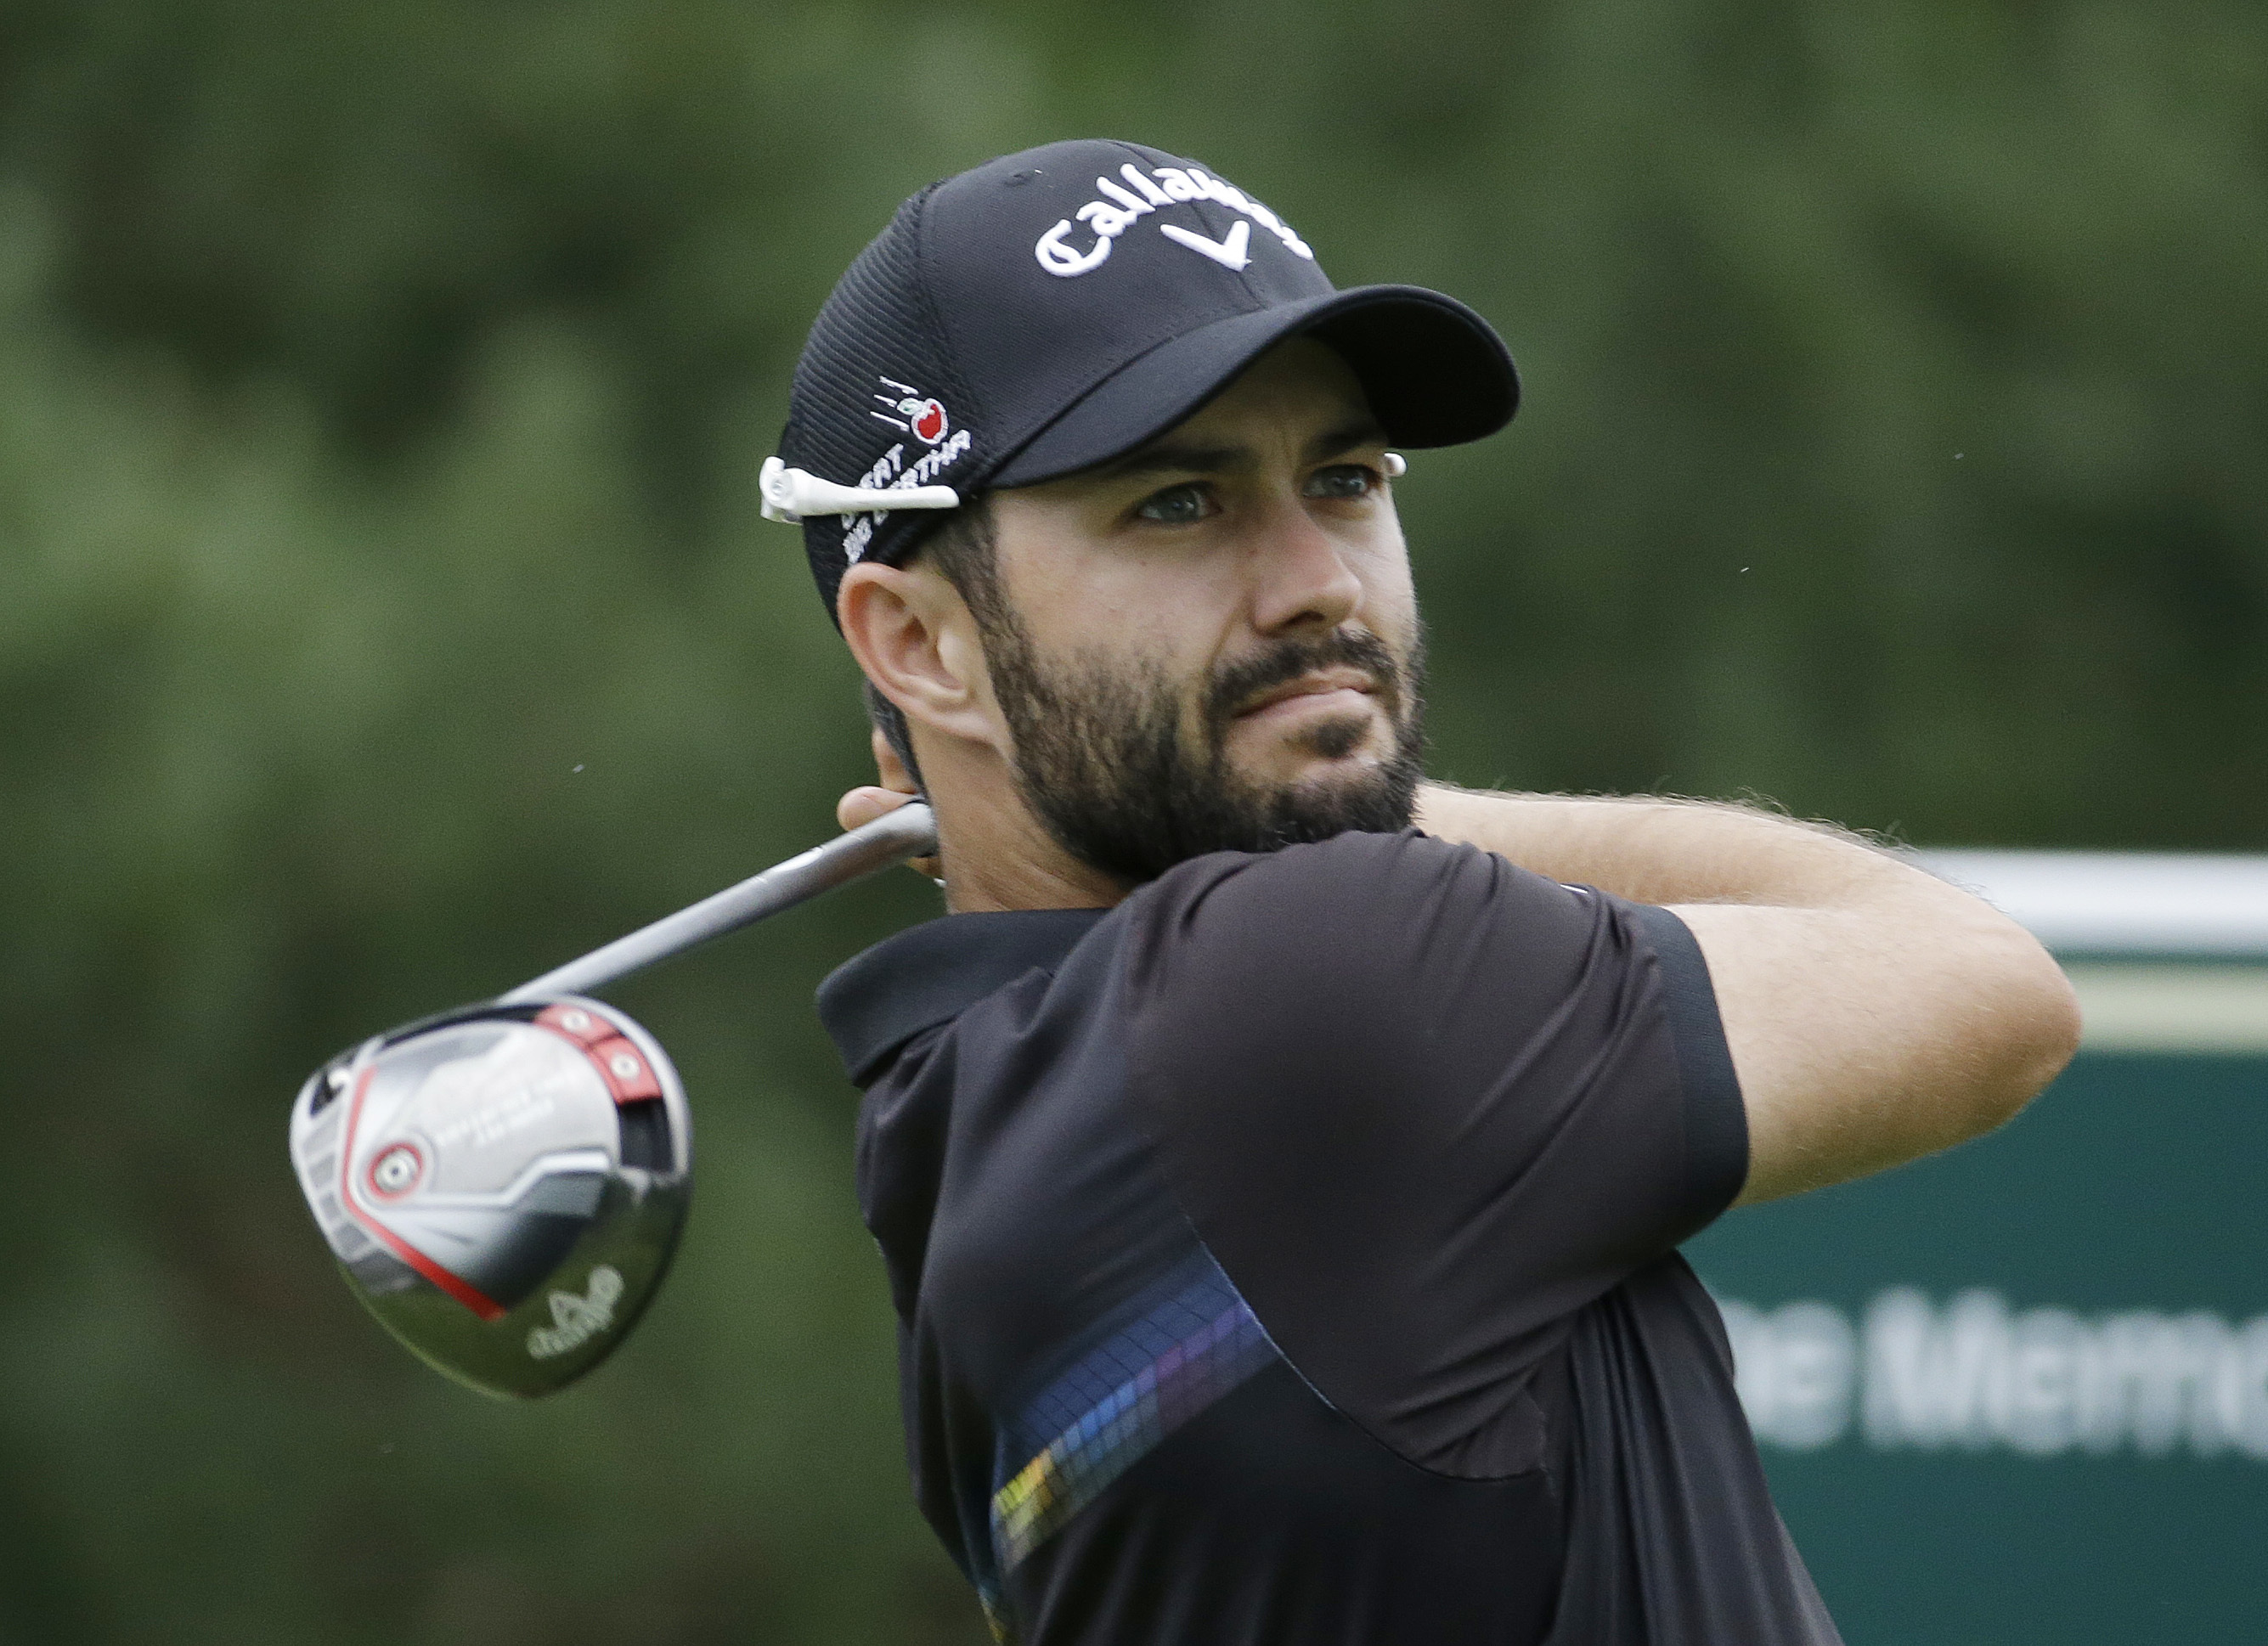 Adam Hadwin, of Canada, watches his tee shot off the 15th hole during the third round of the Memorial golf tournament, Saturday, June 4, 2016, in Dublin, Ohio. (AP Photo/Darron Cummings)